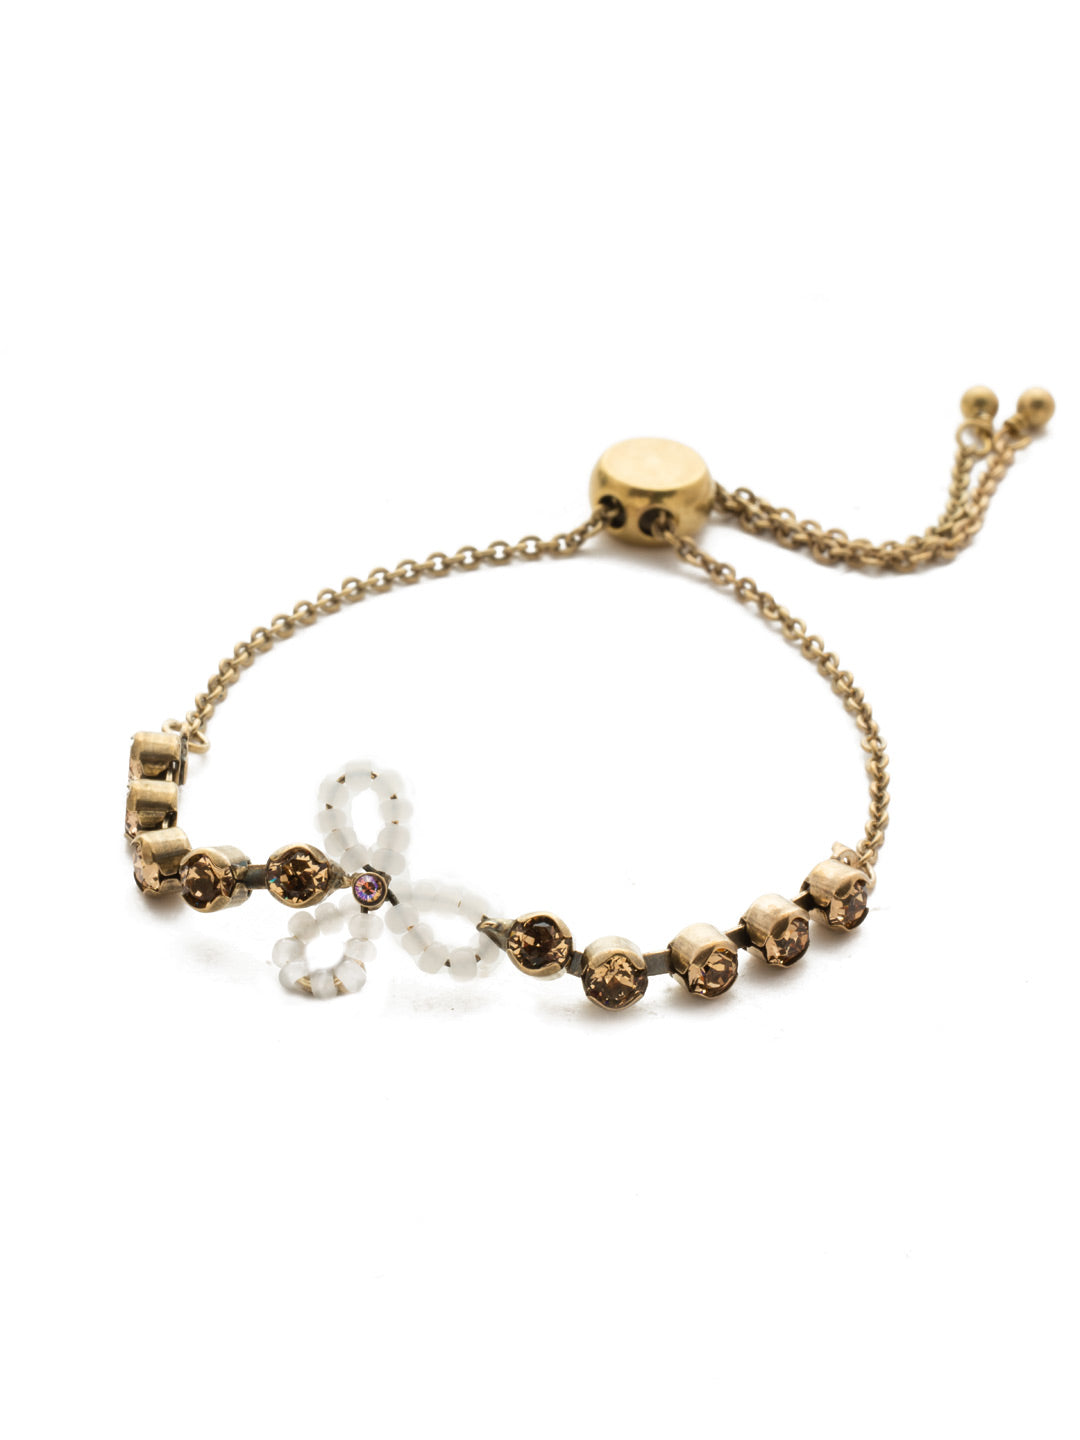 Morning Mist Slider Bracelet - BEK41AGROB